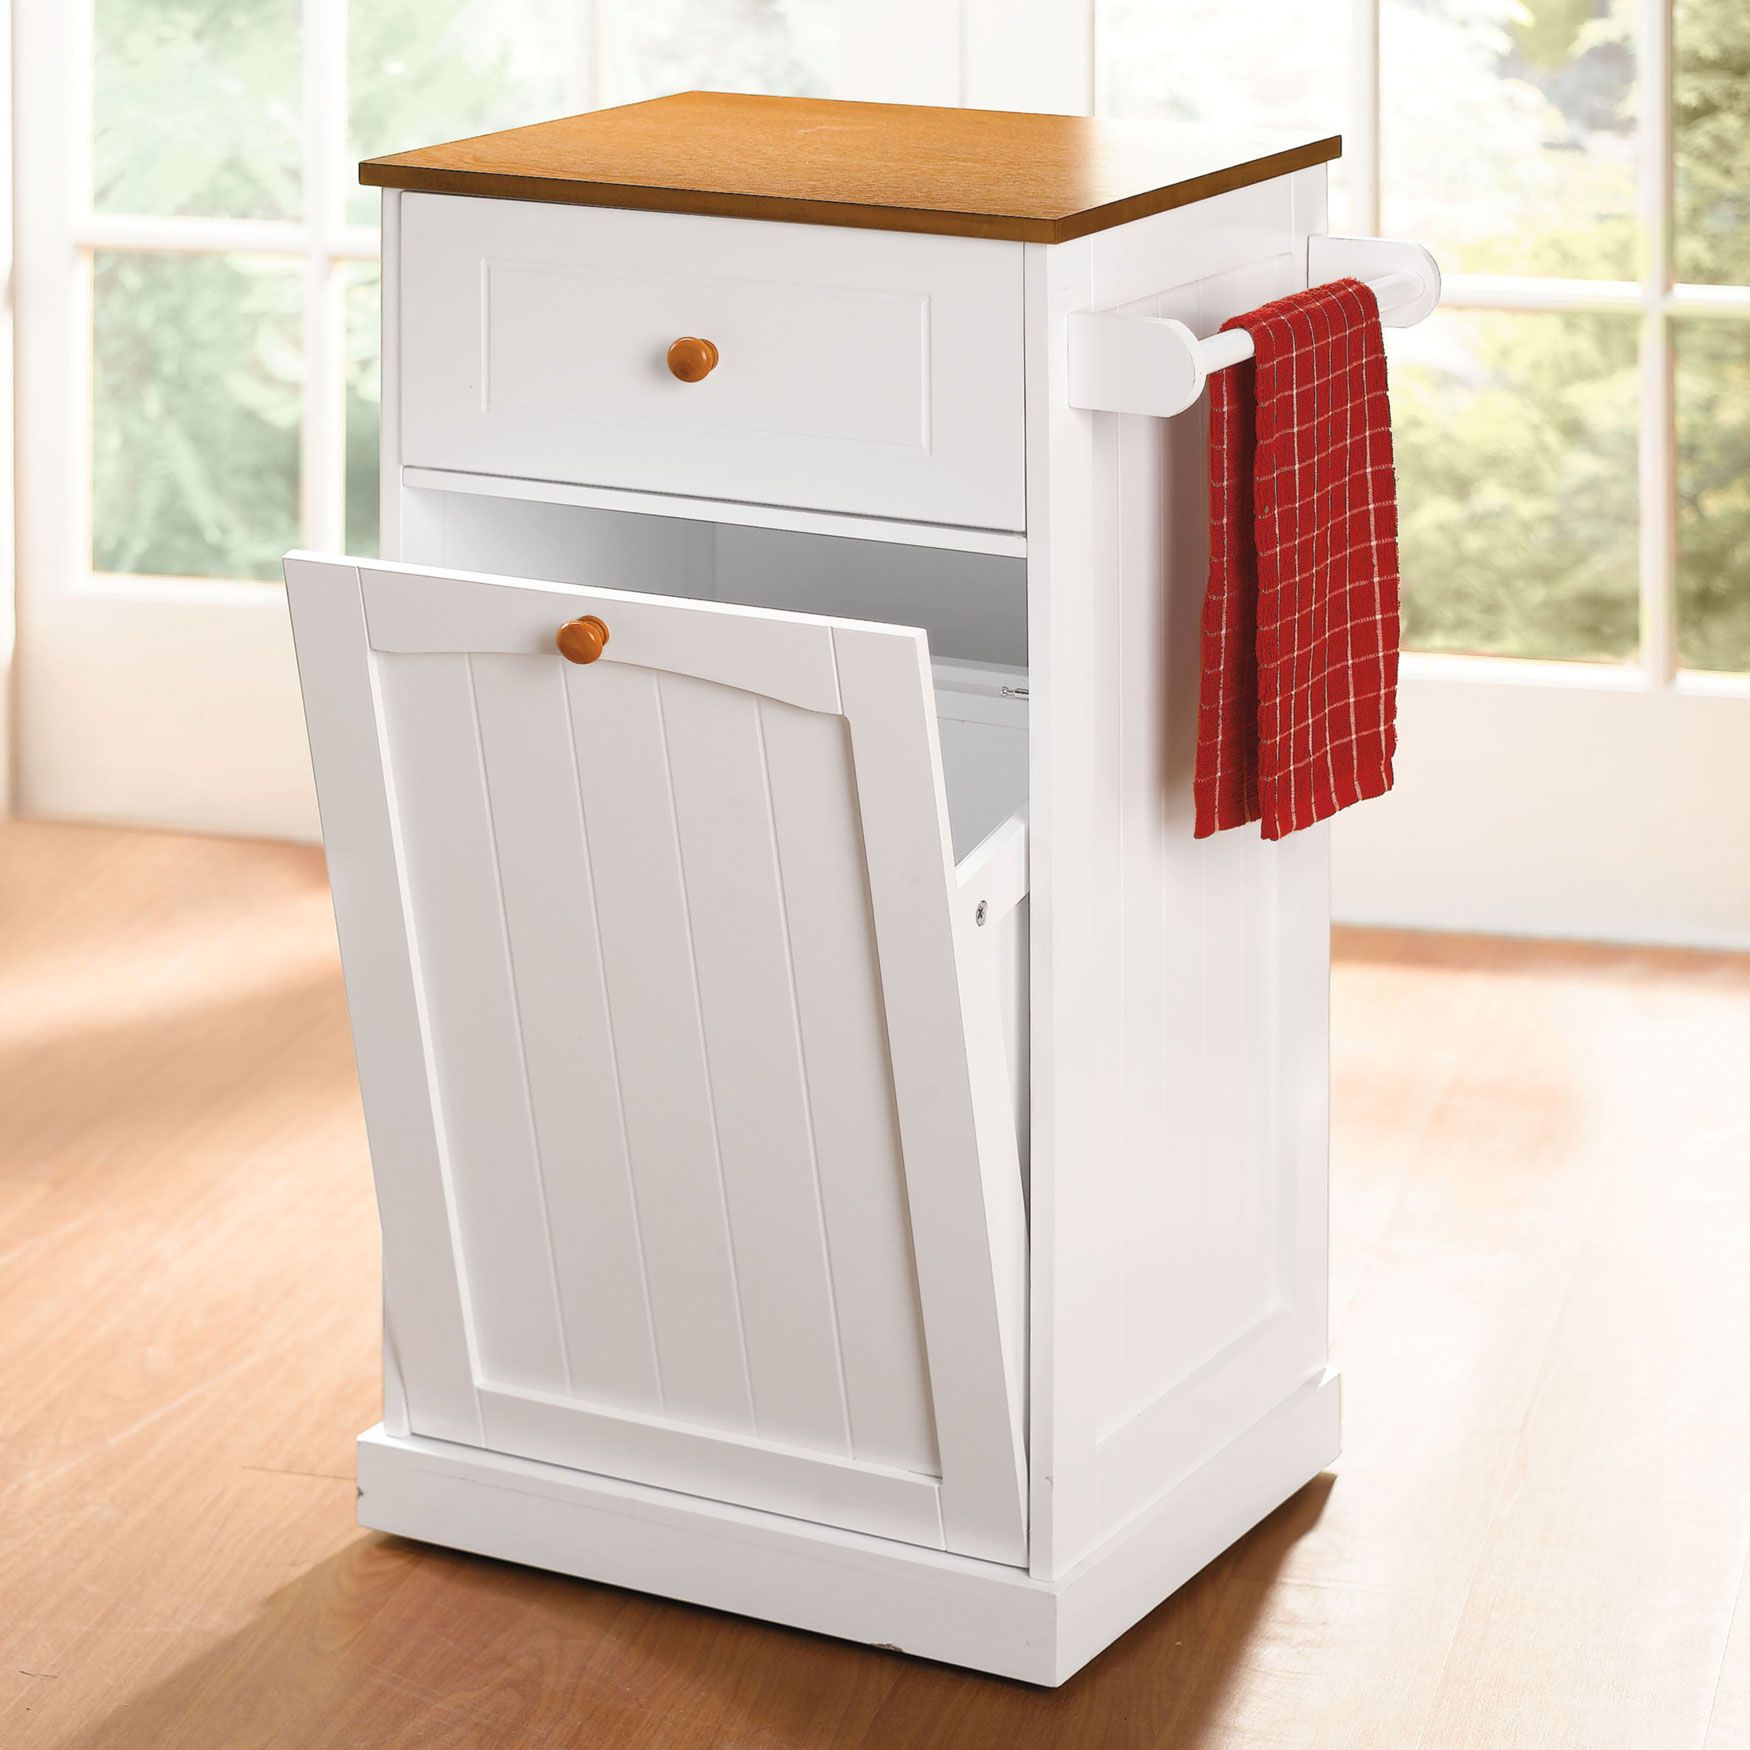 17 best images about trash can cabinet on pinterest | kitchen